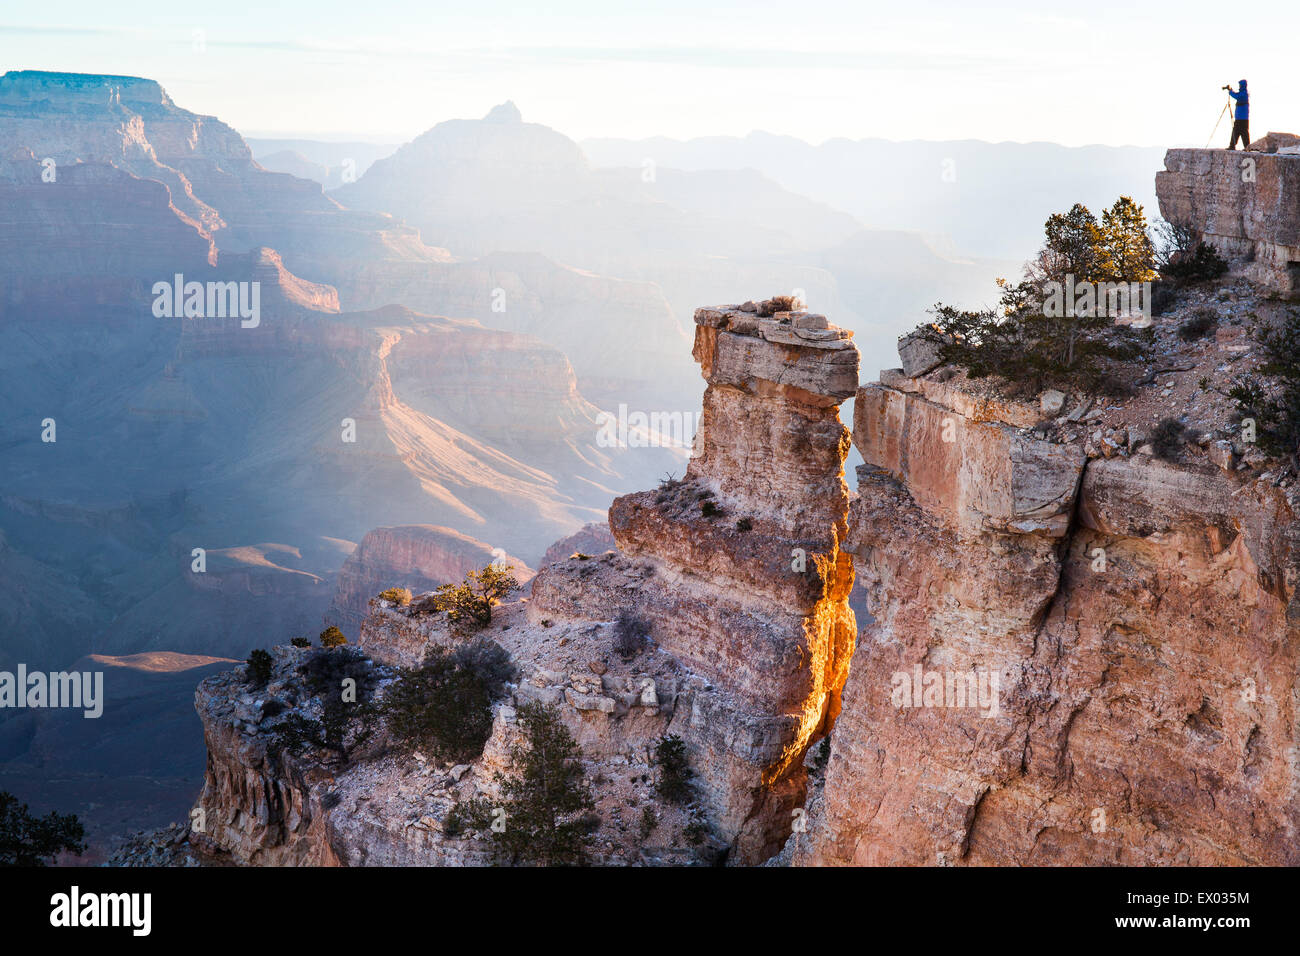 Distant silhouetted view of woman taking photographs of Grand Canyon, Arizona, USA - Stock Image